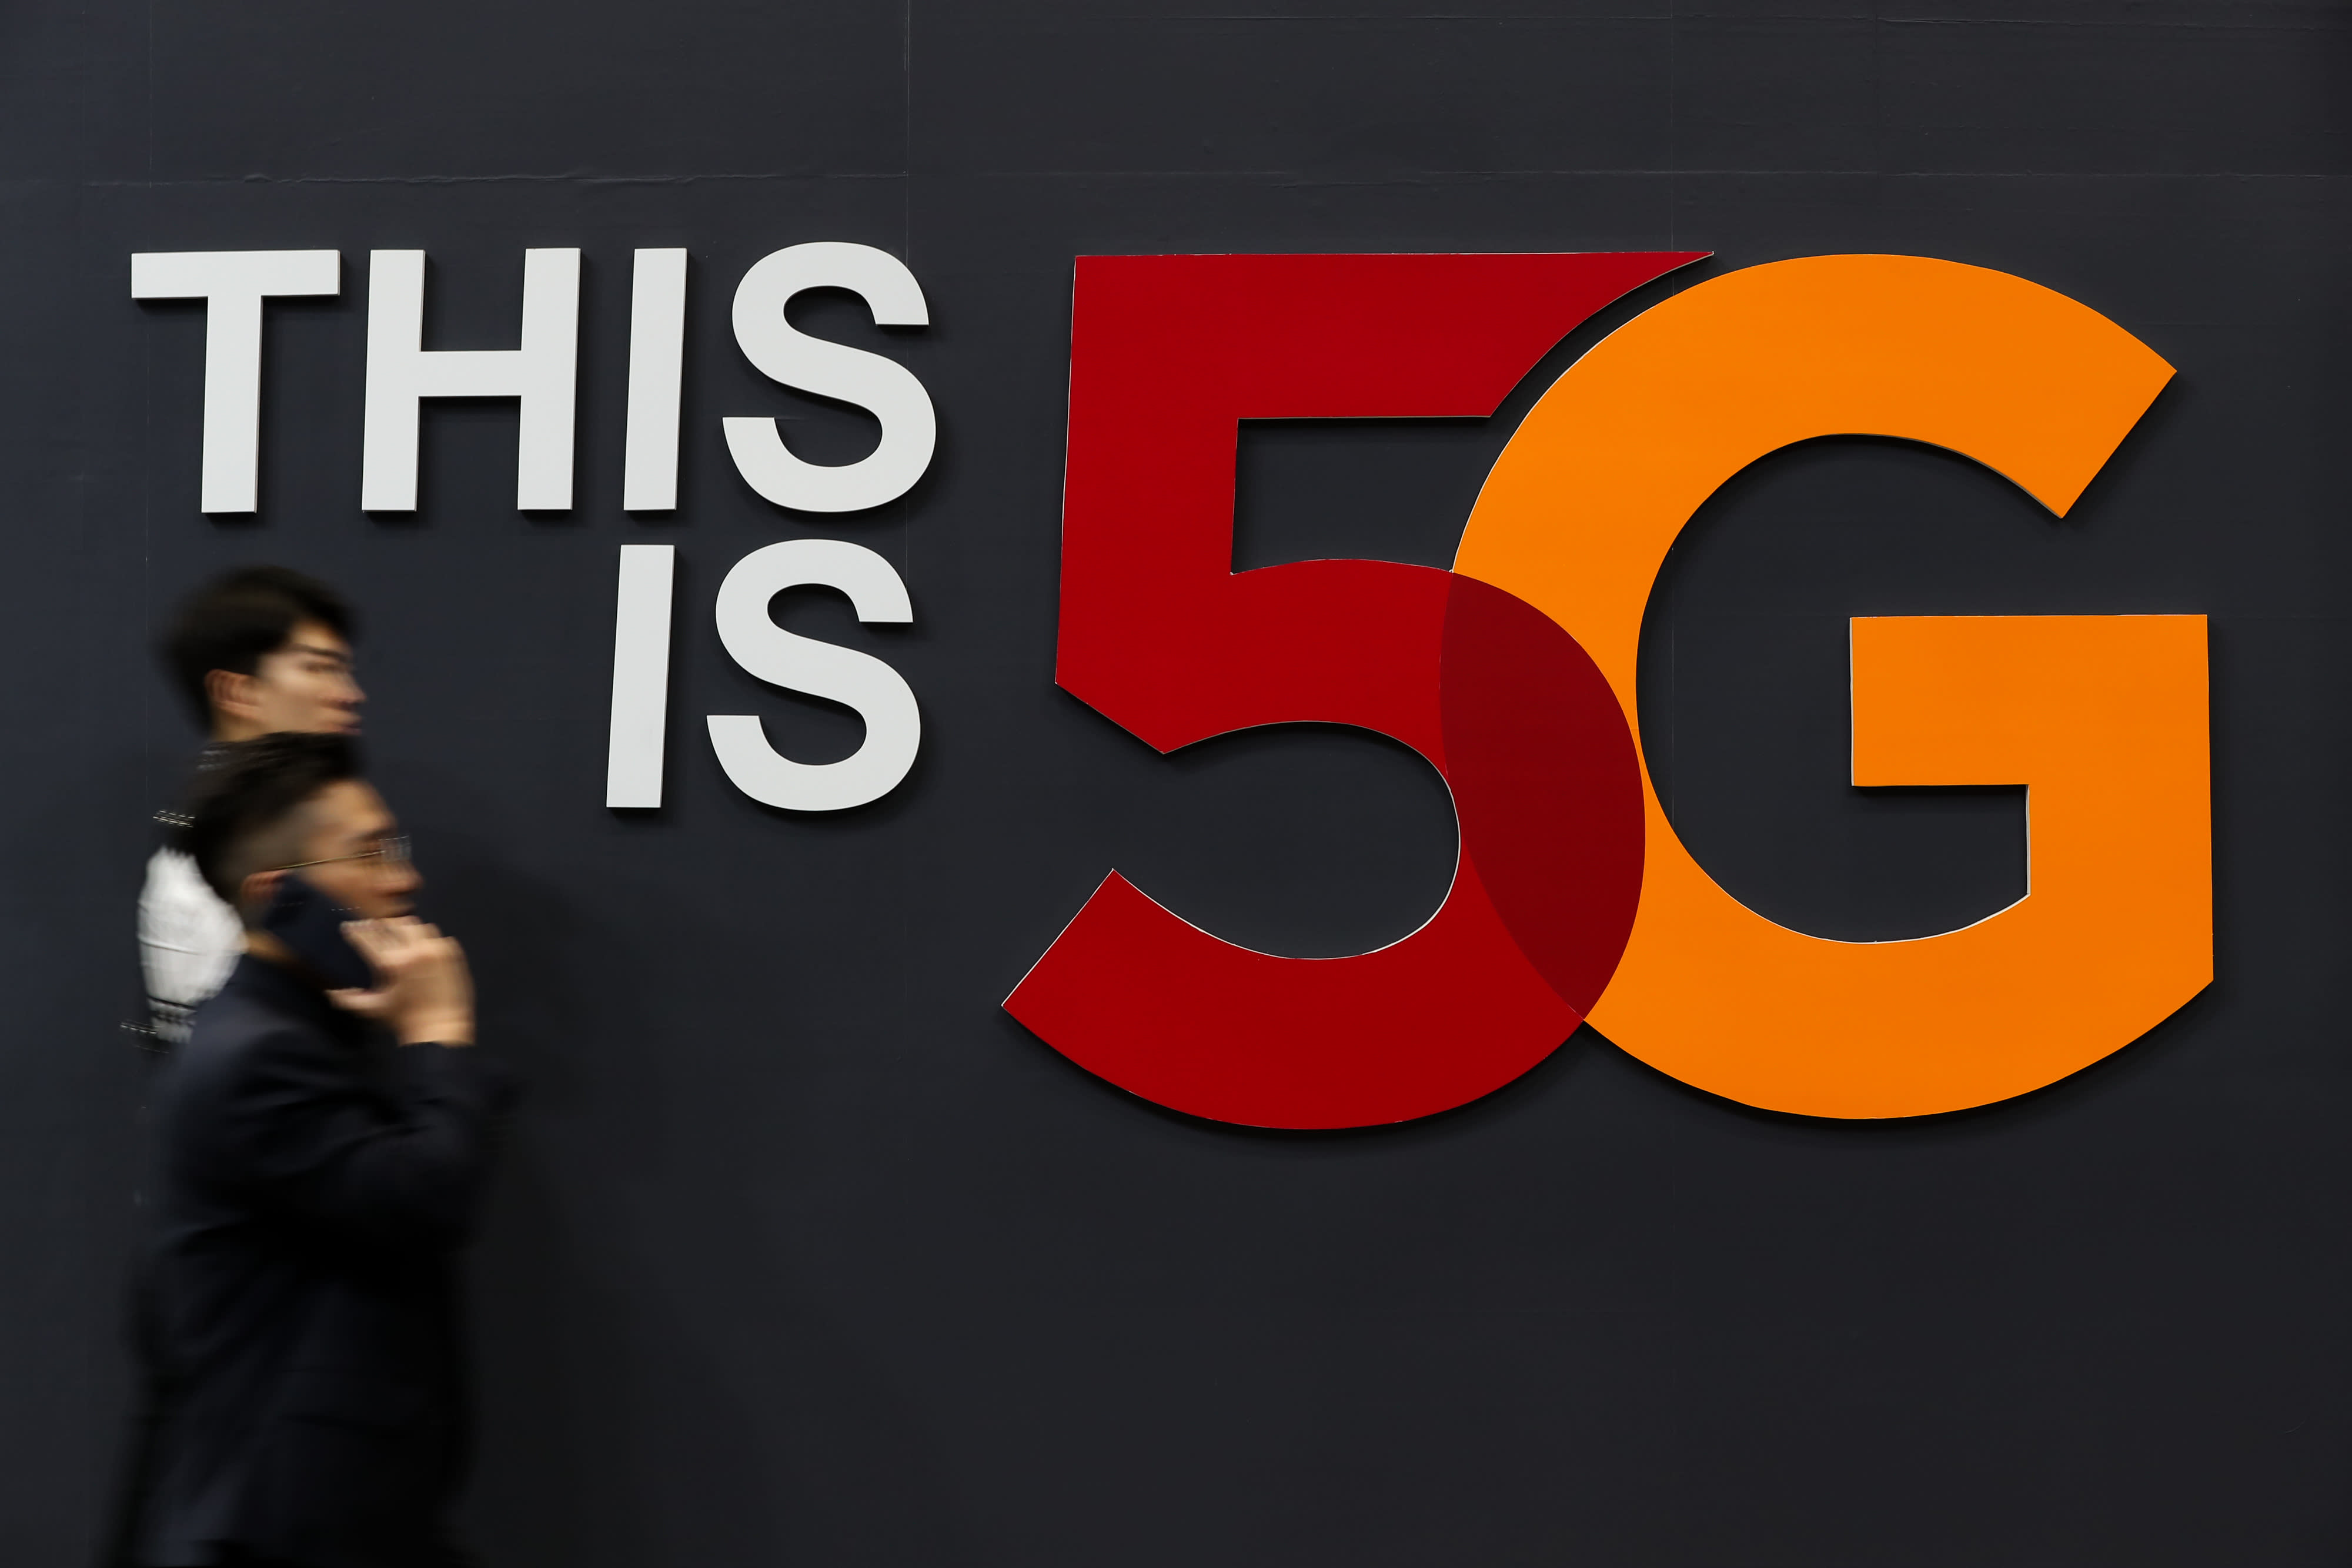 Singapore to roll out commercial 5G services by 2020